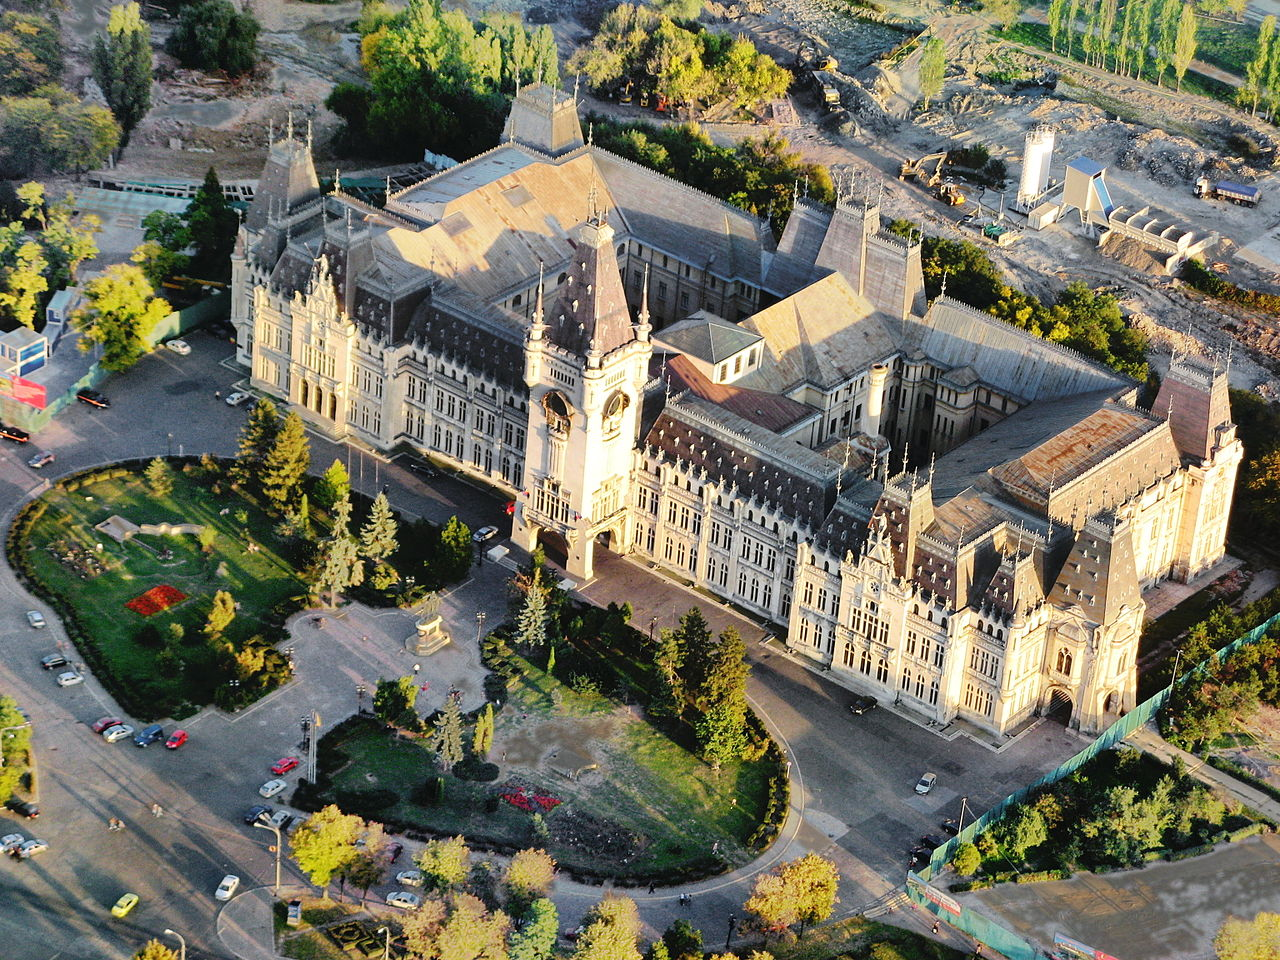 The  Palace of Culture  in  Iași  , built on the ruins of the Royal Court of Moldavia, hosts the largest art collection in Romania. (Source: Wikipedia)